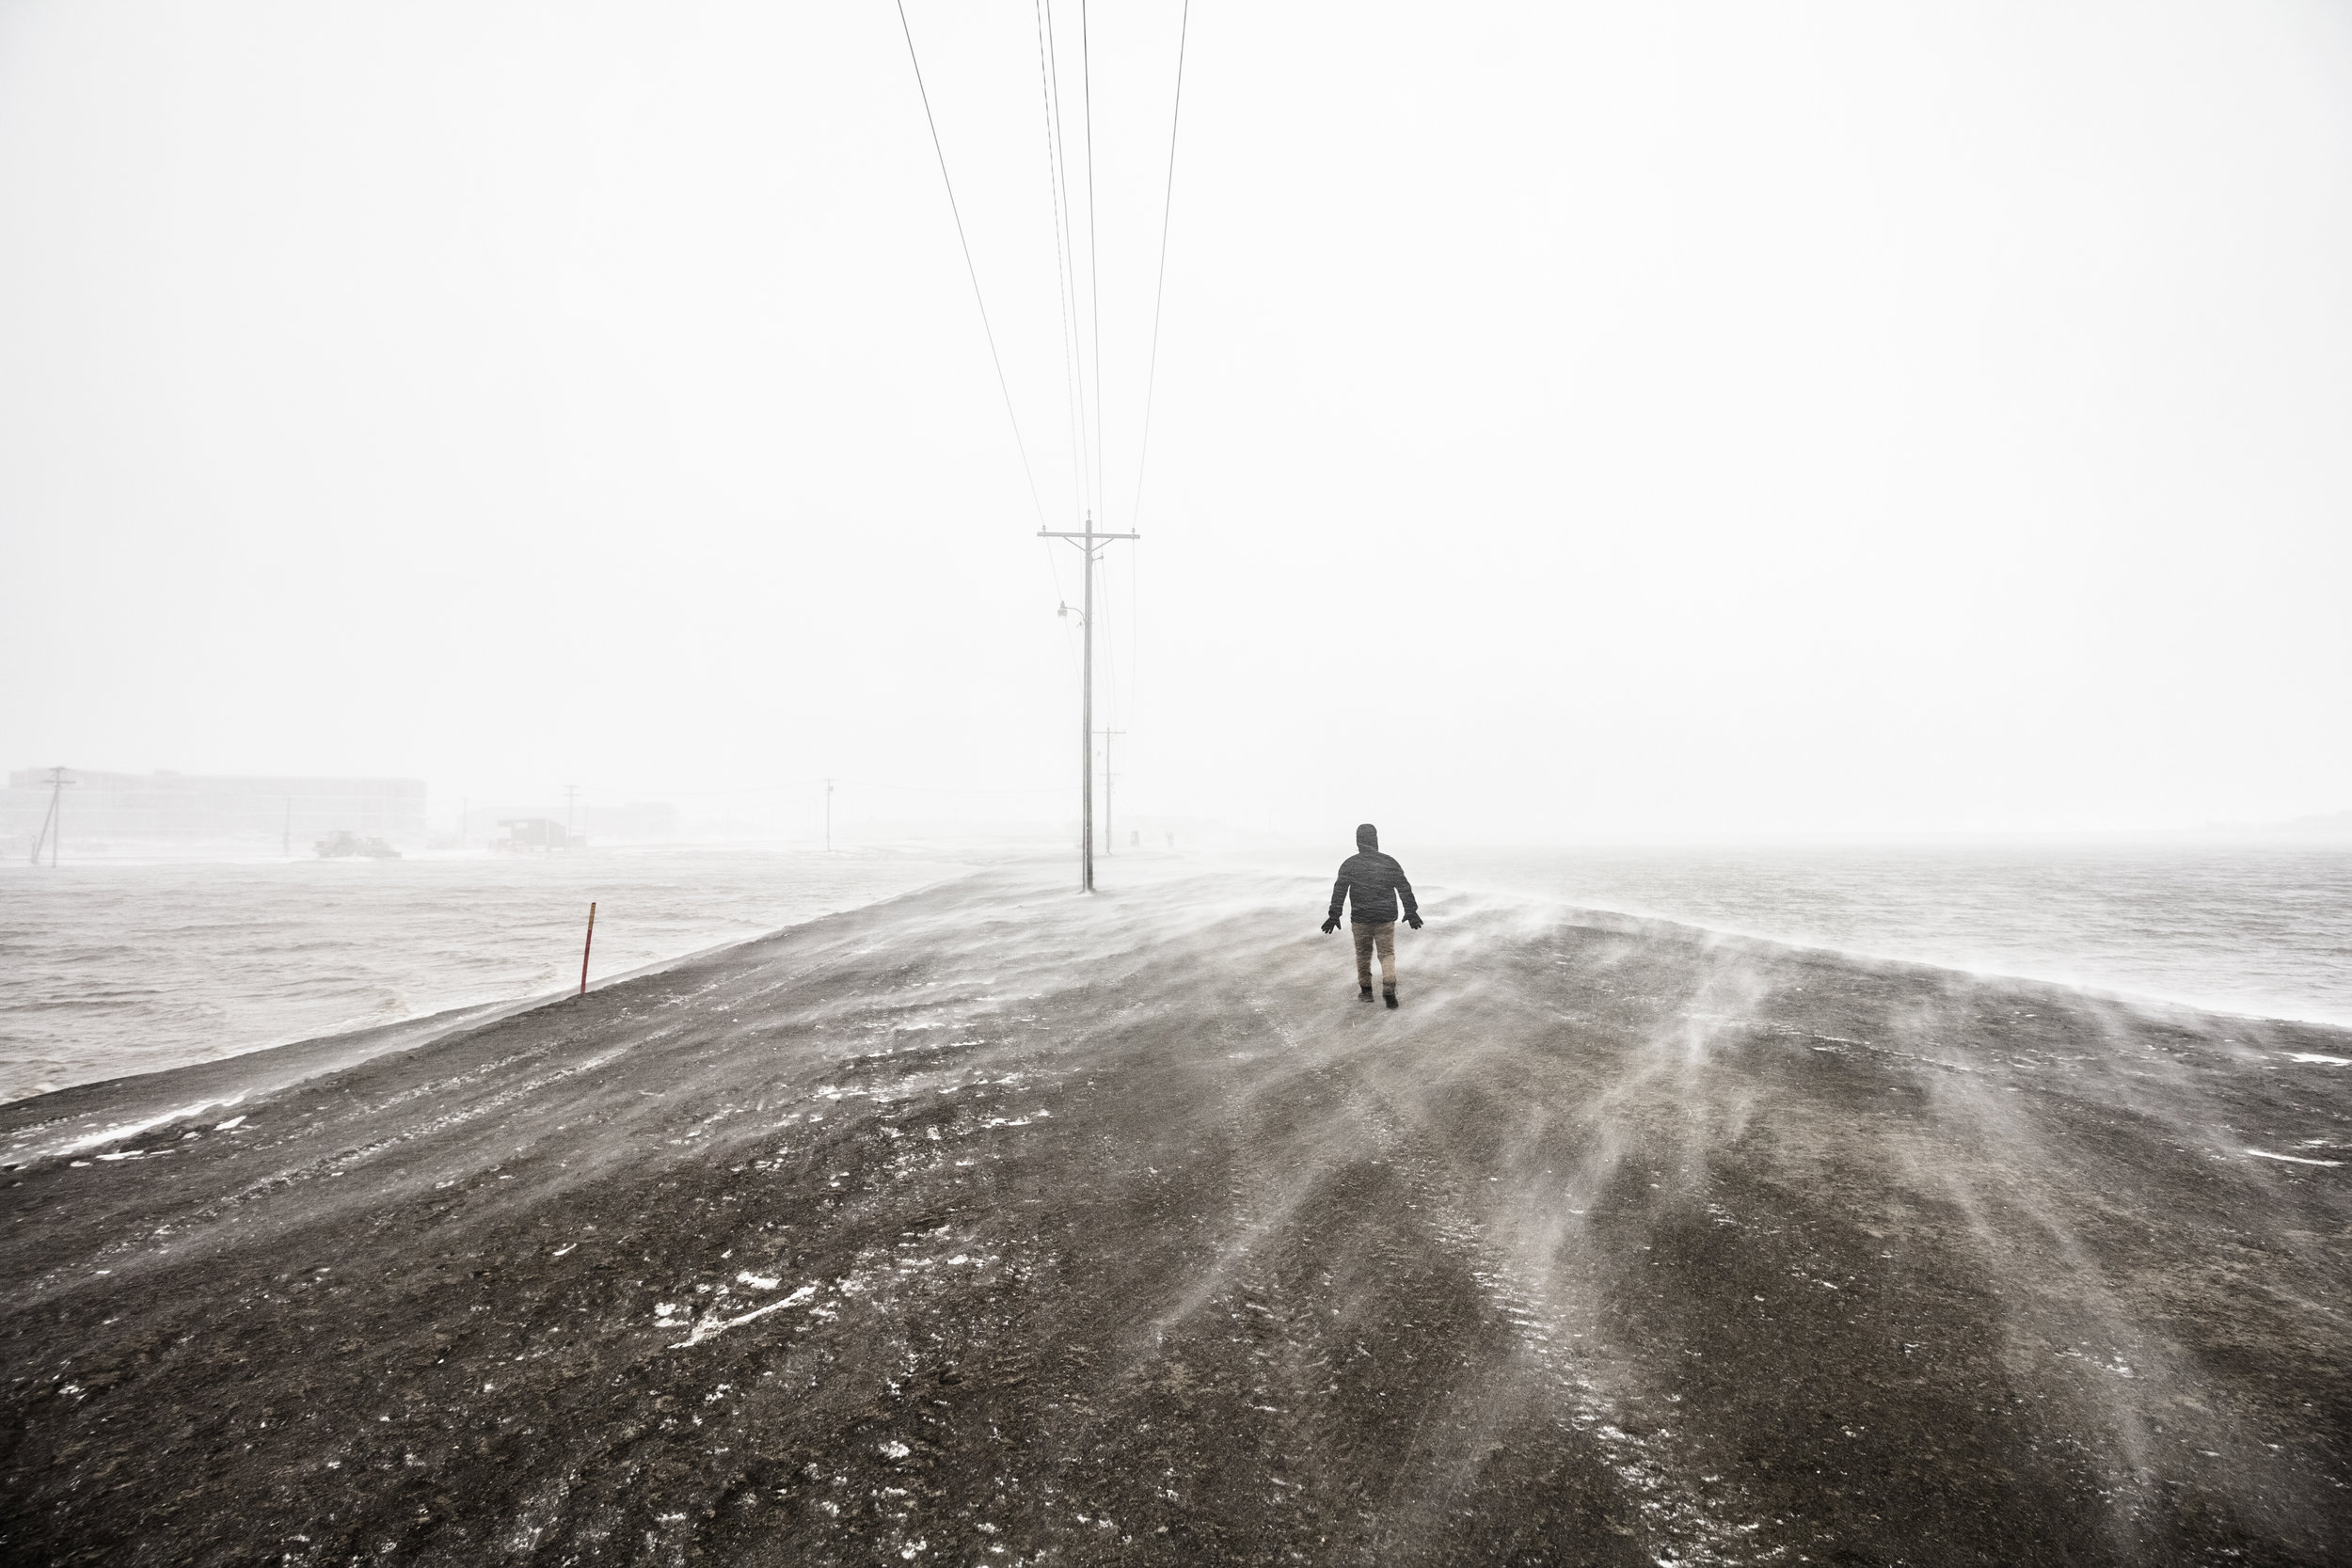 Drifting Snow Conditions